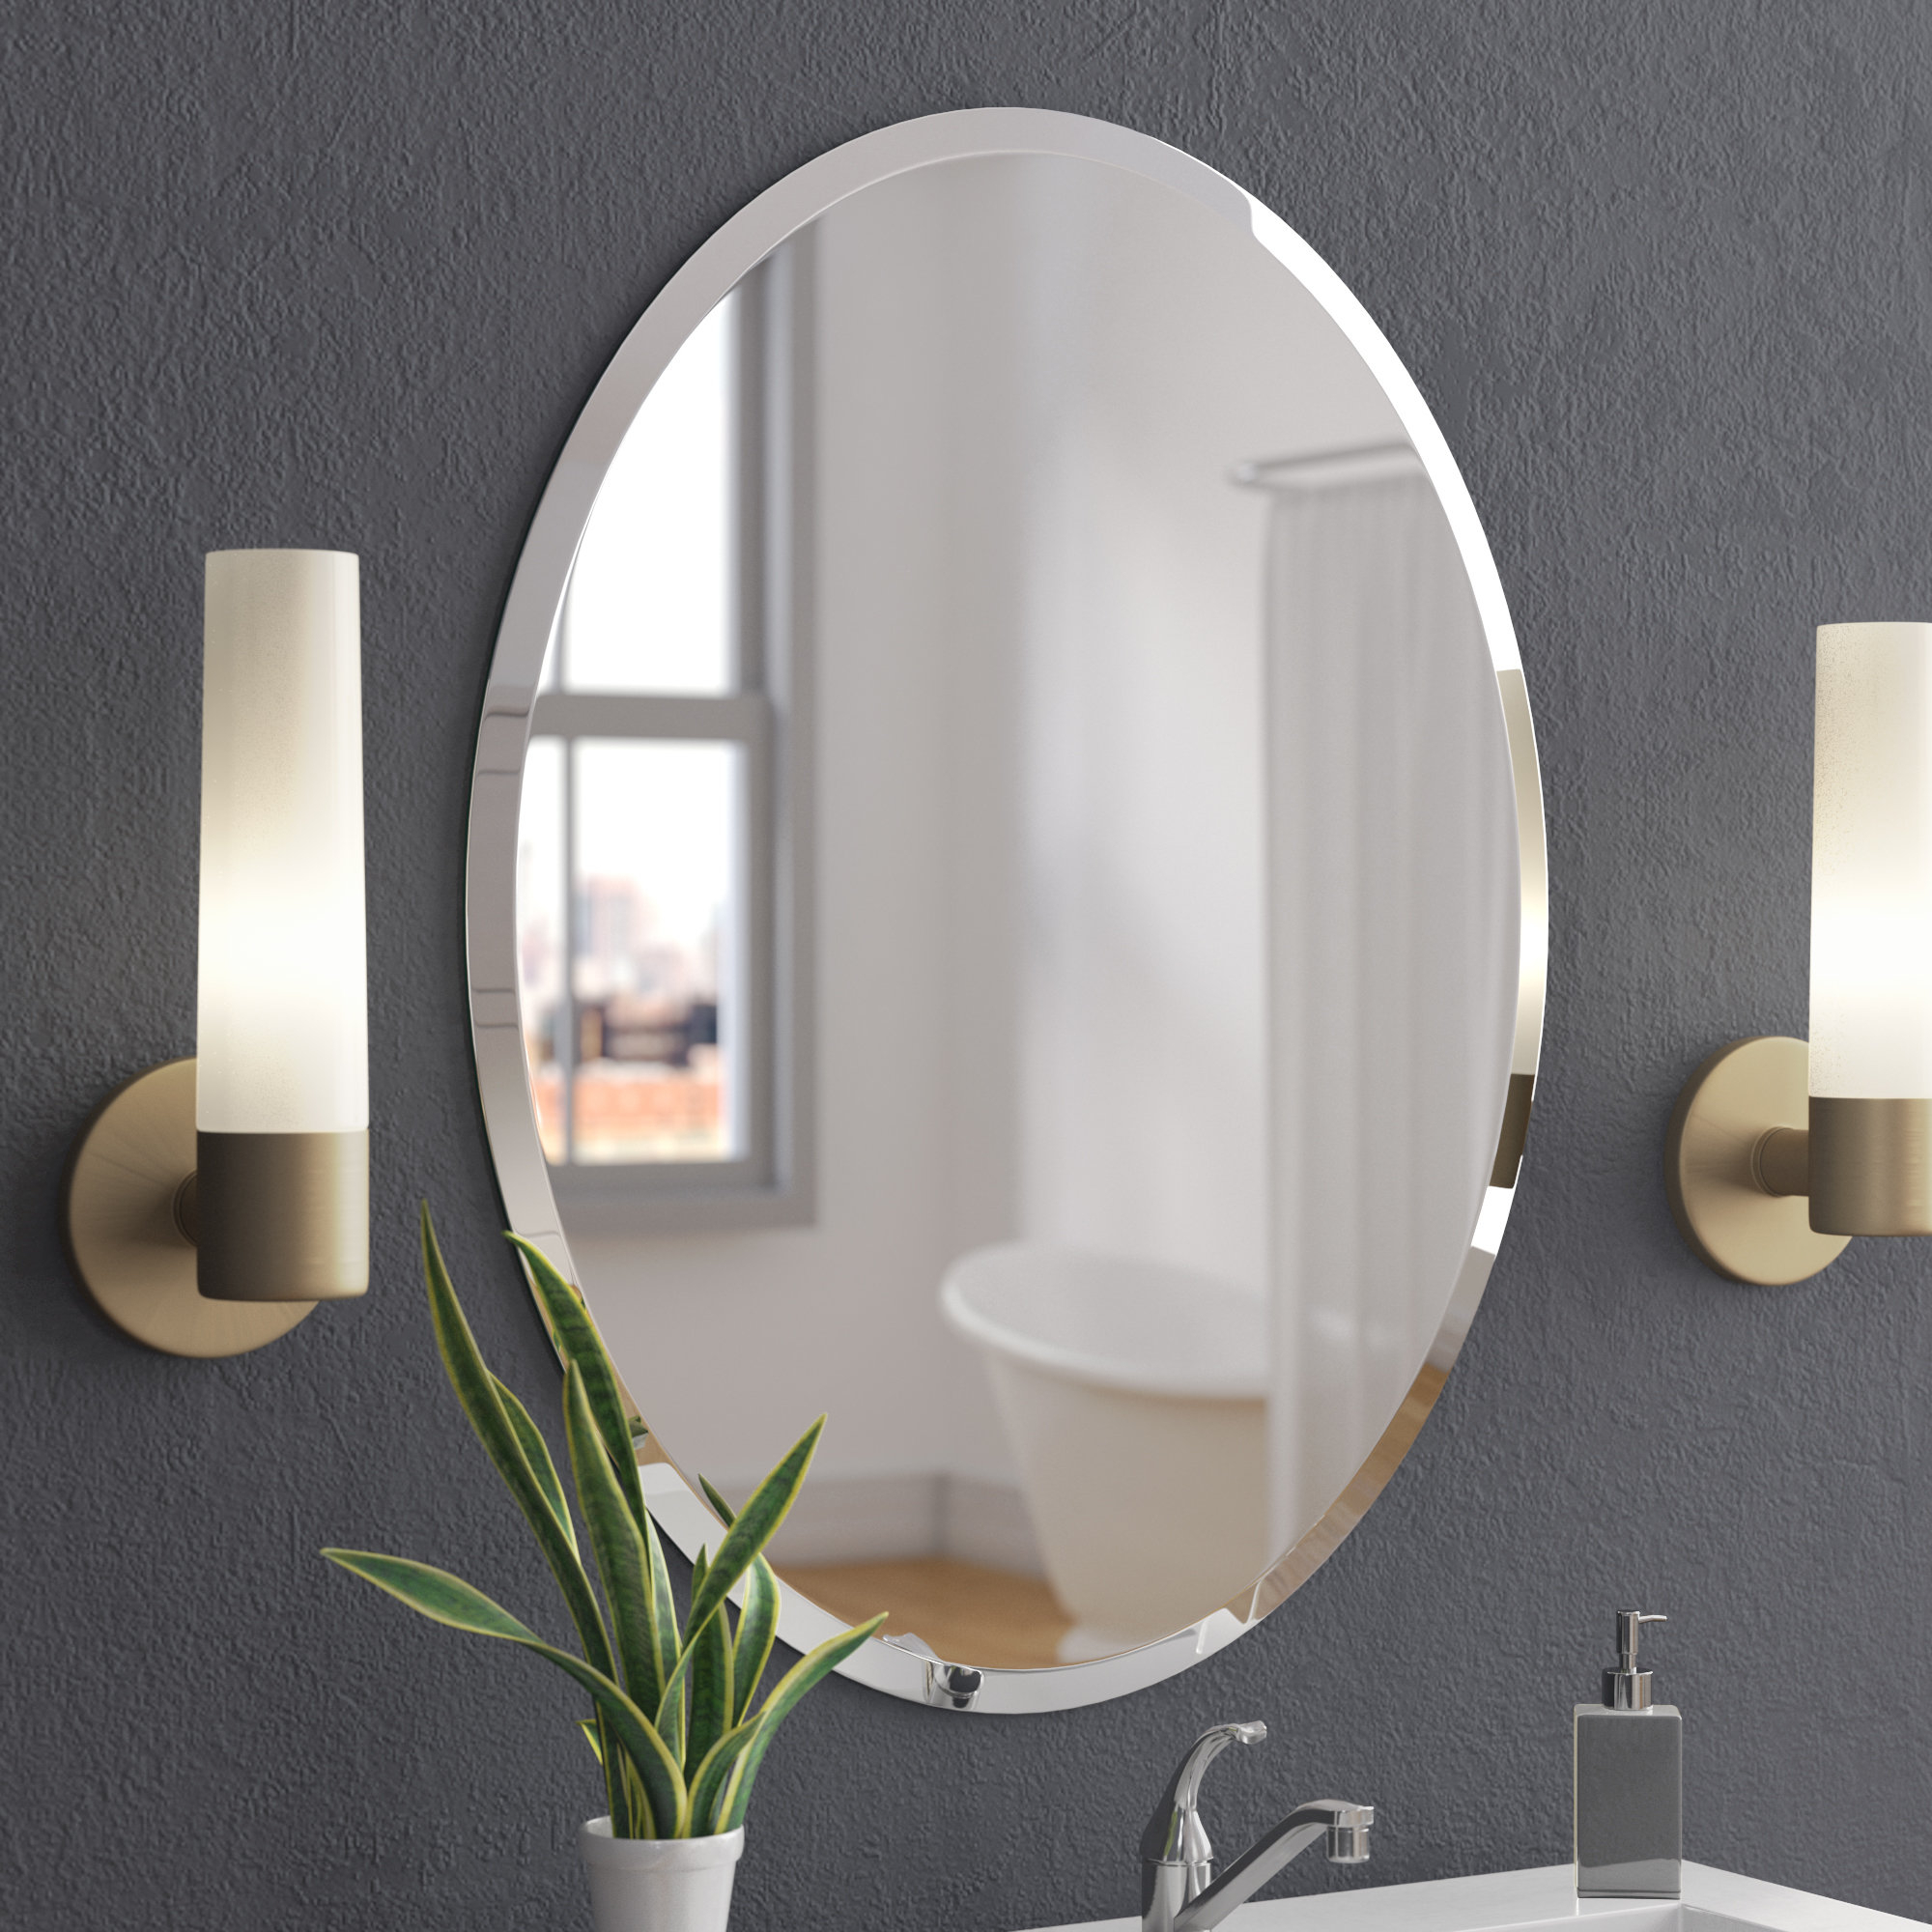 Callison Oval Bevel Frameless Wall Mirror With Regard To Thornbury Oval Bevel Frameless Wall Mirrors (View 2 of 20)